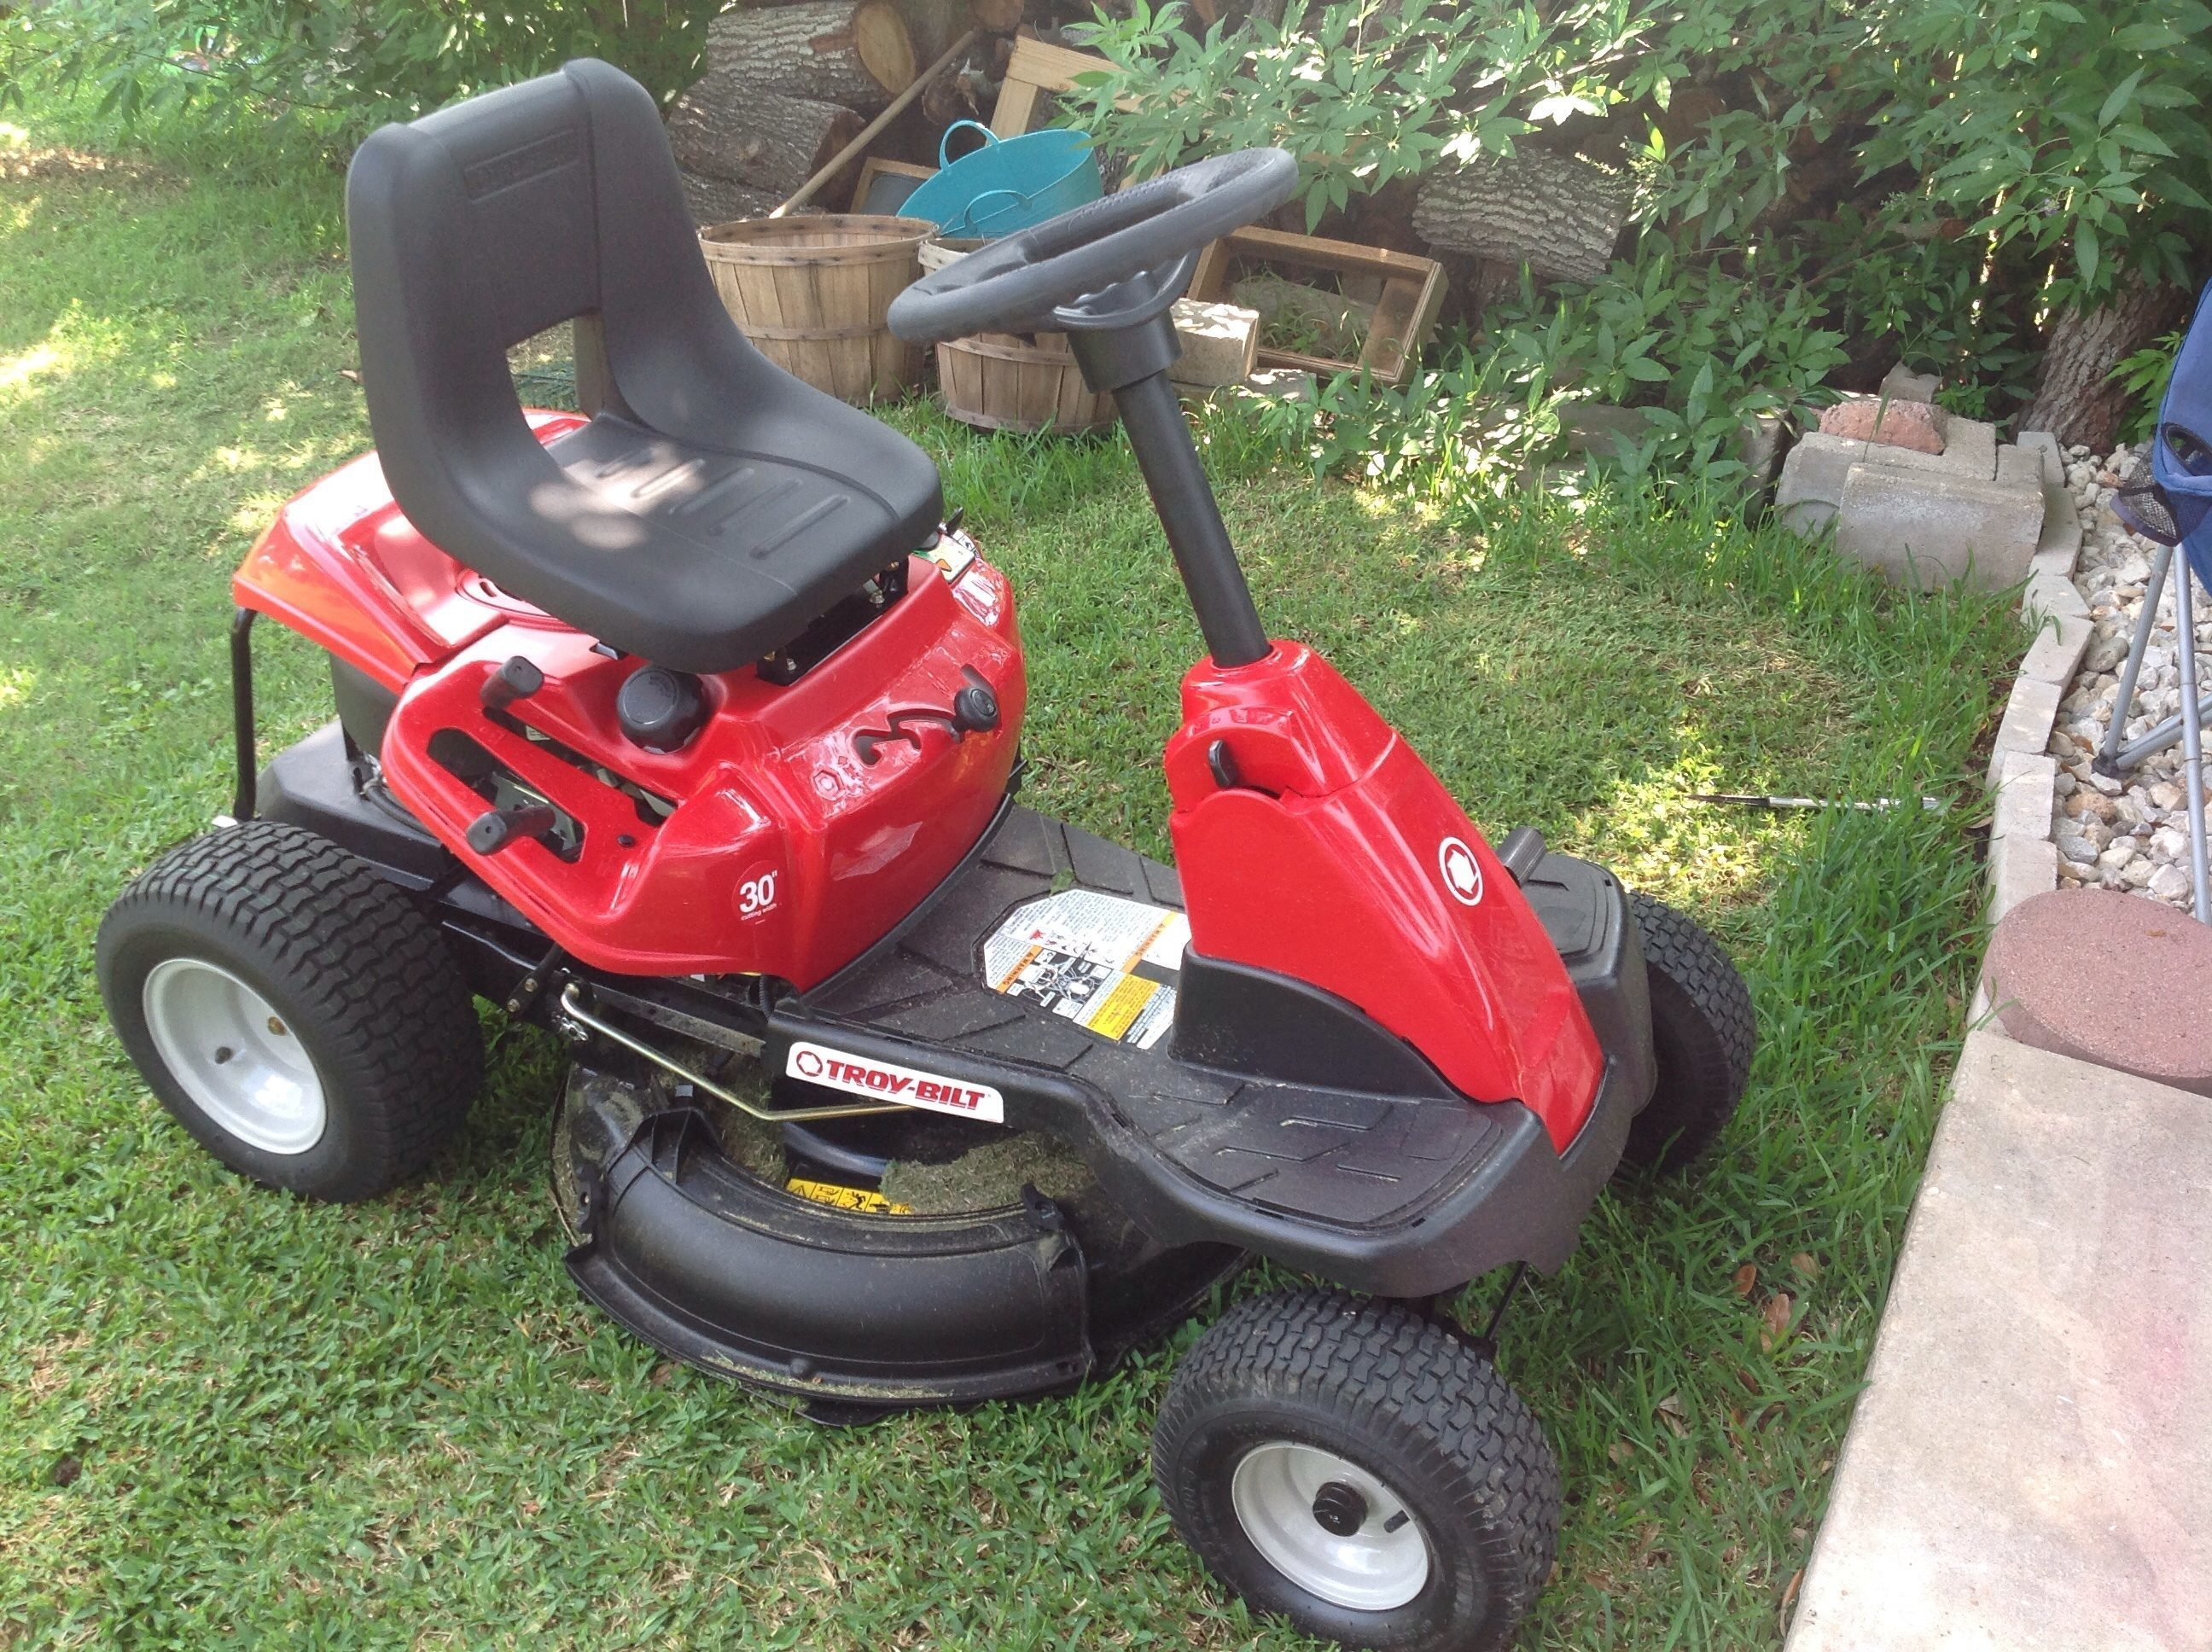 Riding lawn mower won t start - I Purchased The Troy Bilt 26j Mini Rider To Replace My Craftsman Ride On Mower I M 55 Female And Very Good At Using All Types Of Mowers Tools Etc